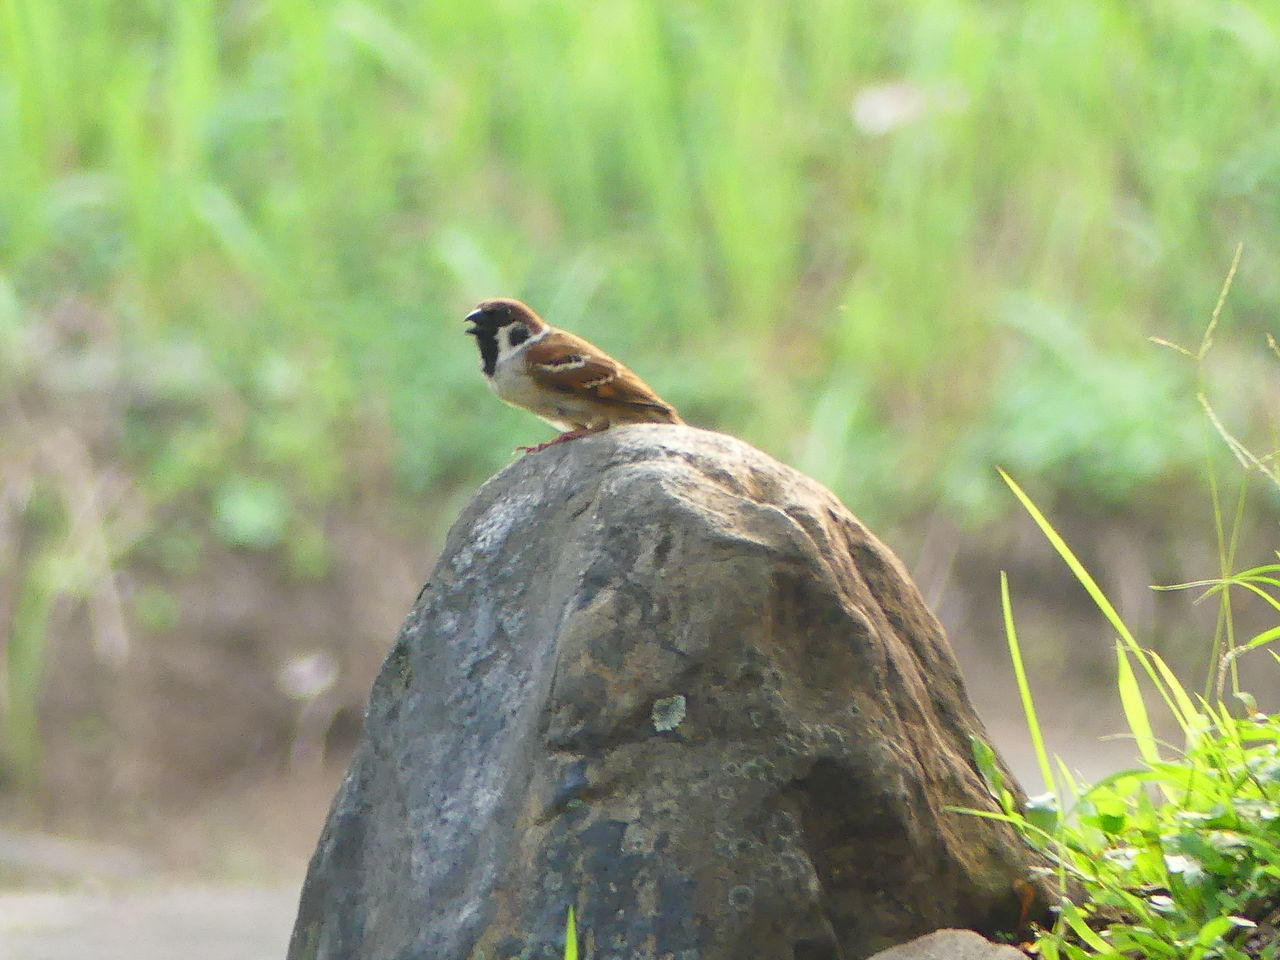 Chirp Chirps Chirpchirp Bird Animal Wildlife Animals In The Wild One Animal Nature Animal Animal Themes Perching Outdoors No People Day Beauty In Nature Portrait Grass Capture The Moment Places Around The World Make Me Remember You  Capture The Light Somewhere I Remember Somewhere Over The Rainbow Somewhere In The World Beauty In Nature